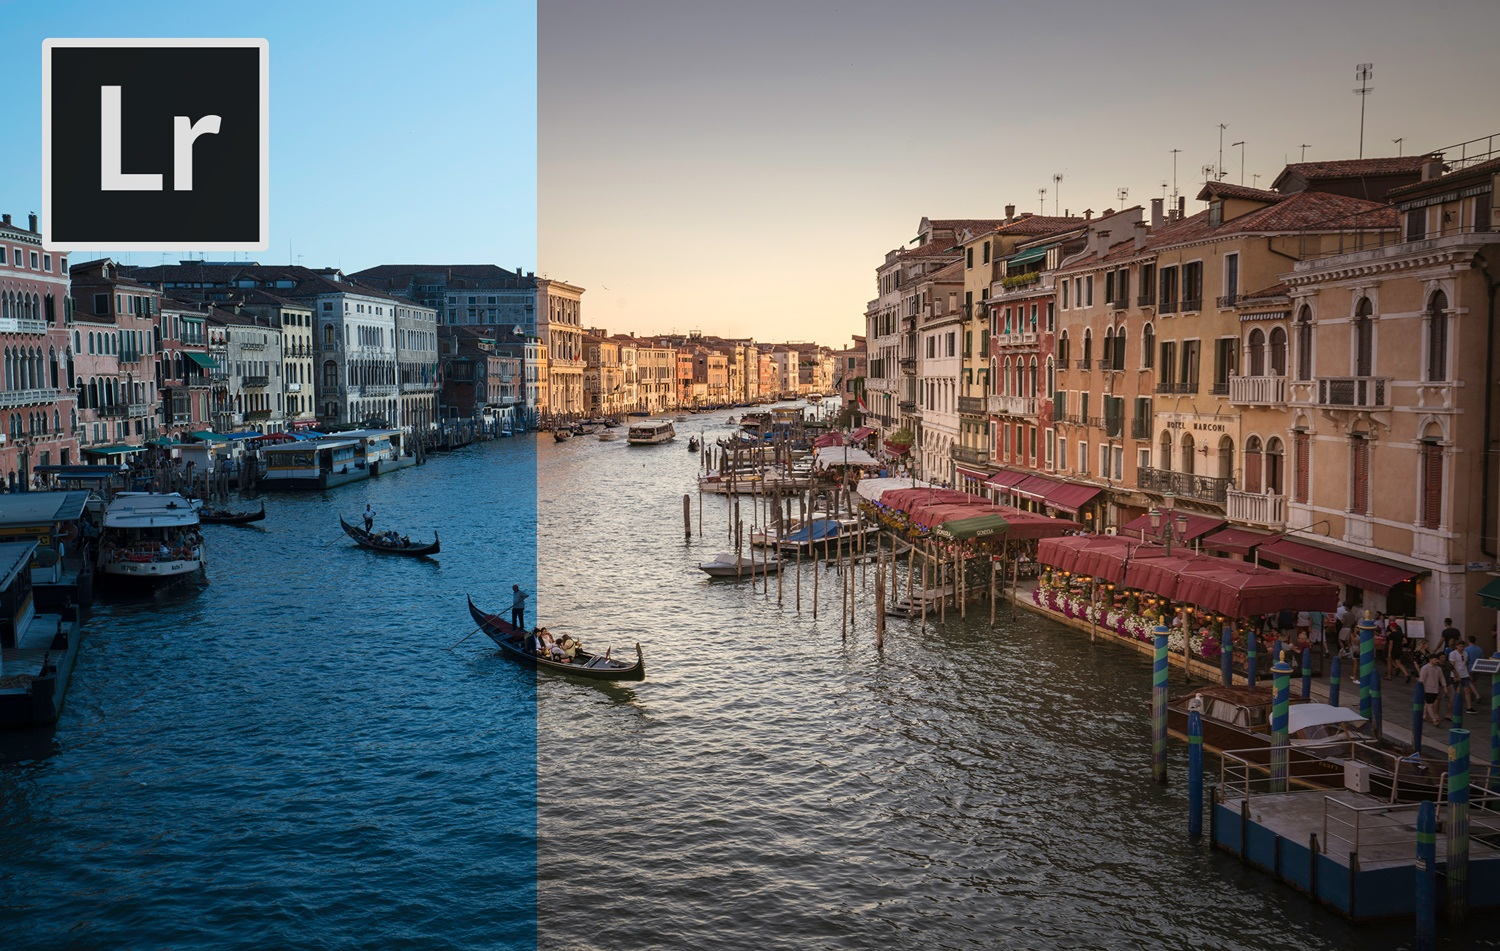 Free-Lightroom-Preset-HD-Shadows-Before-and-After-Presetpro.com_